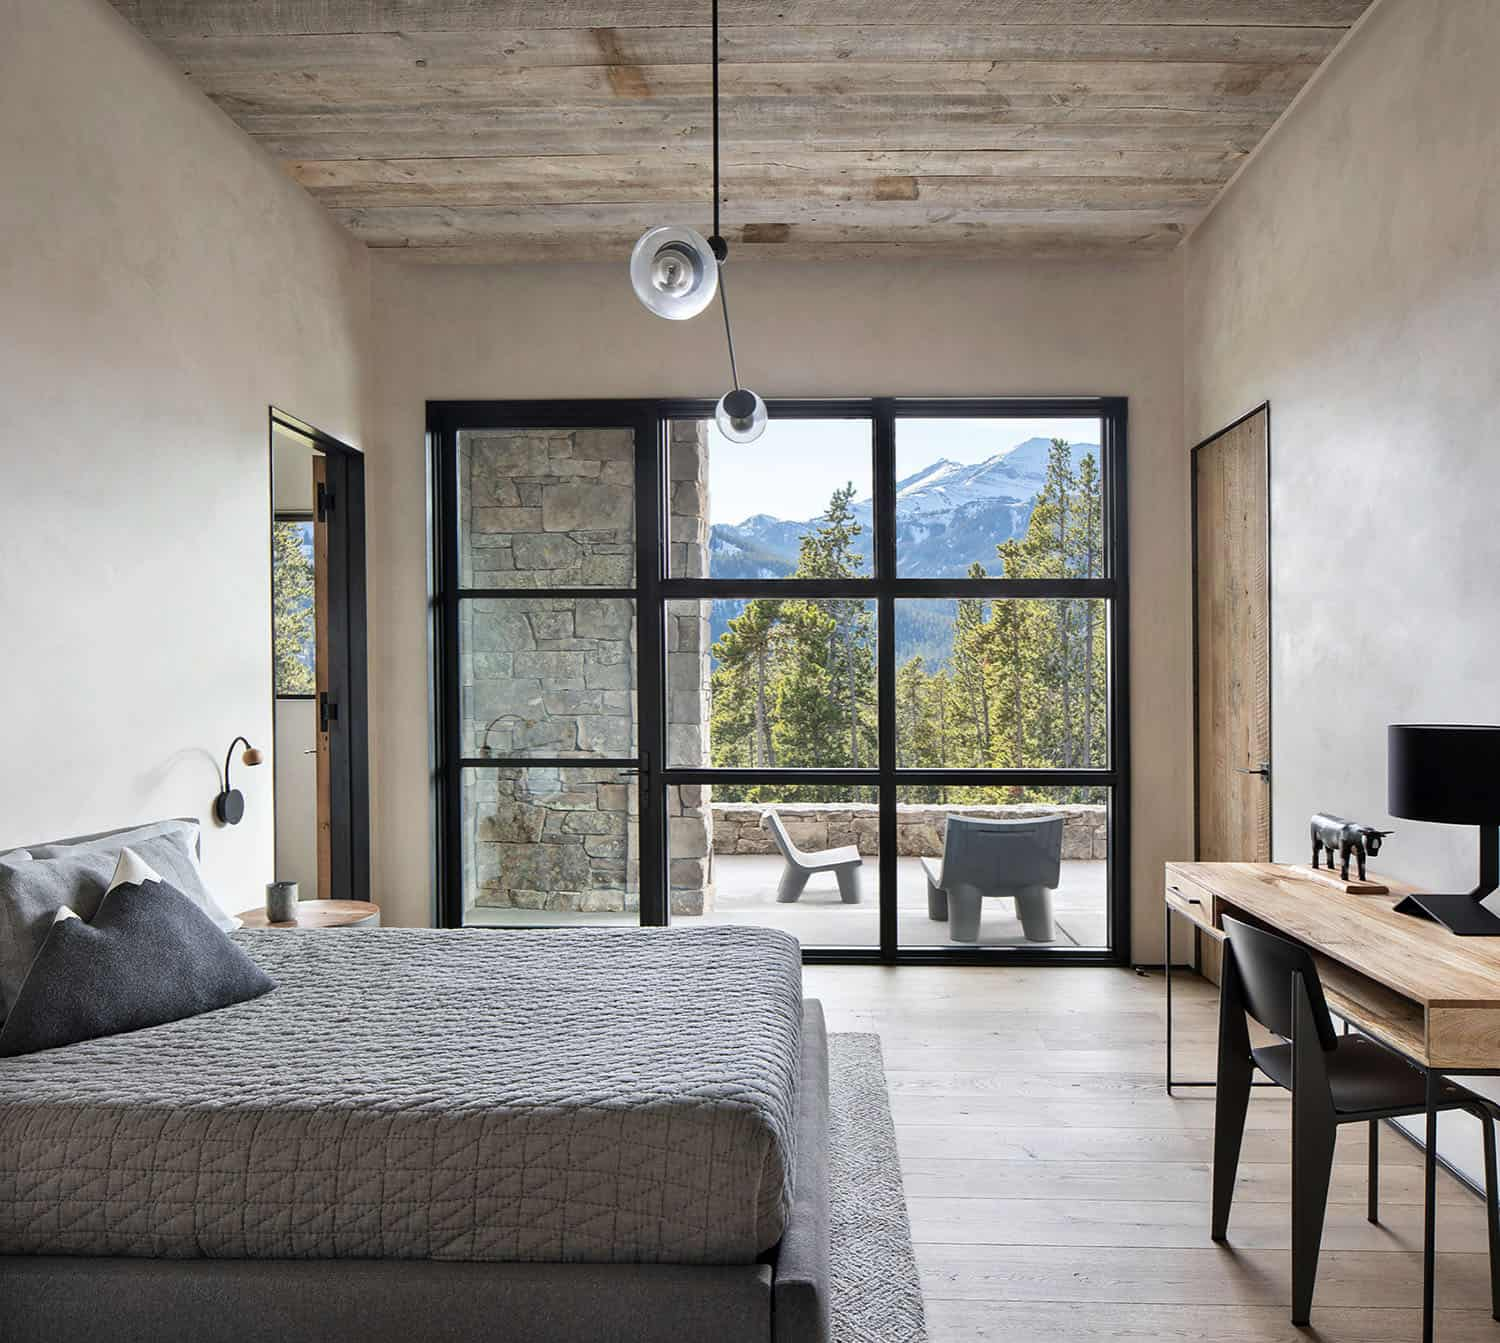 rustic-mountain-style-bedroom